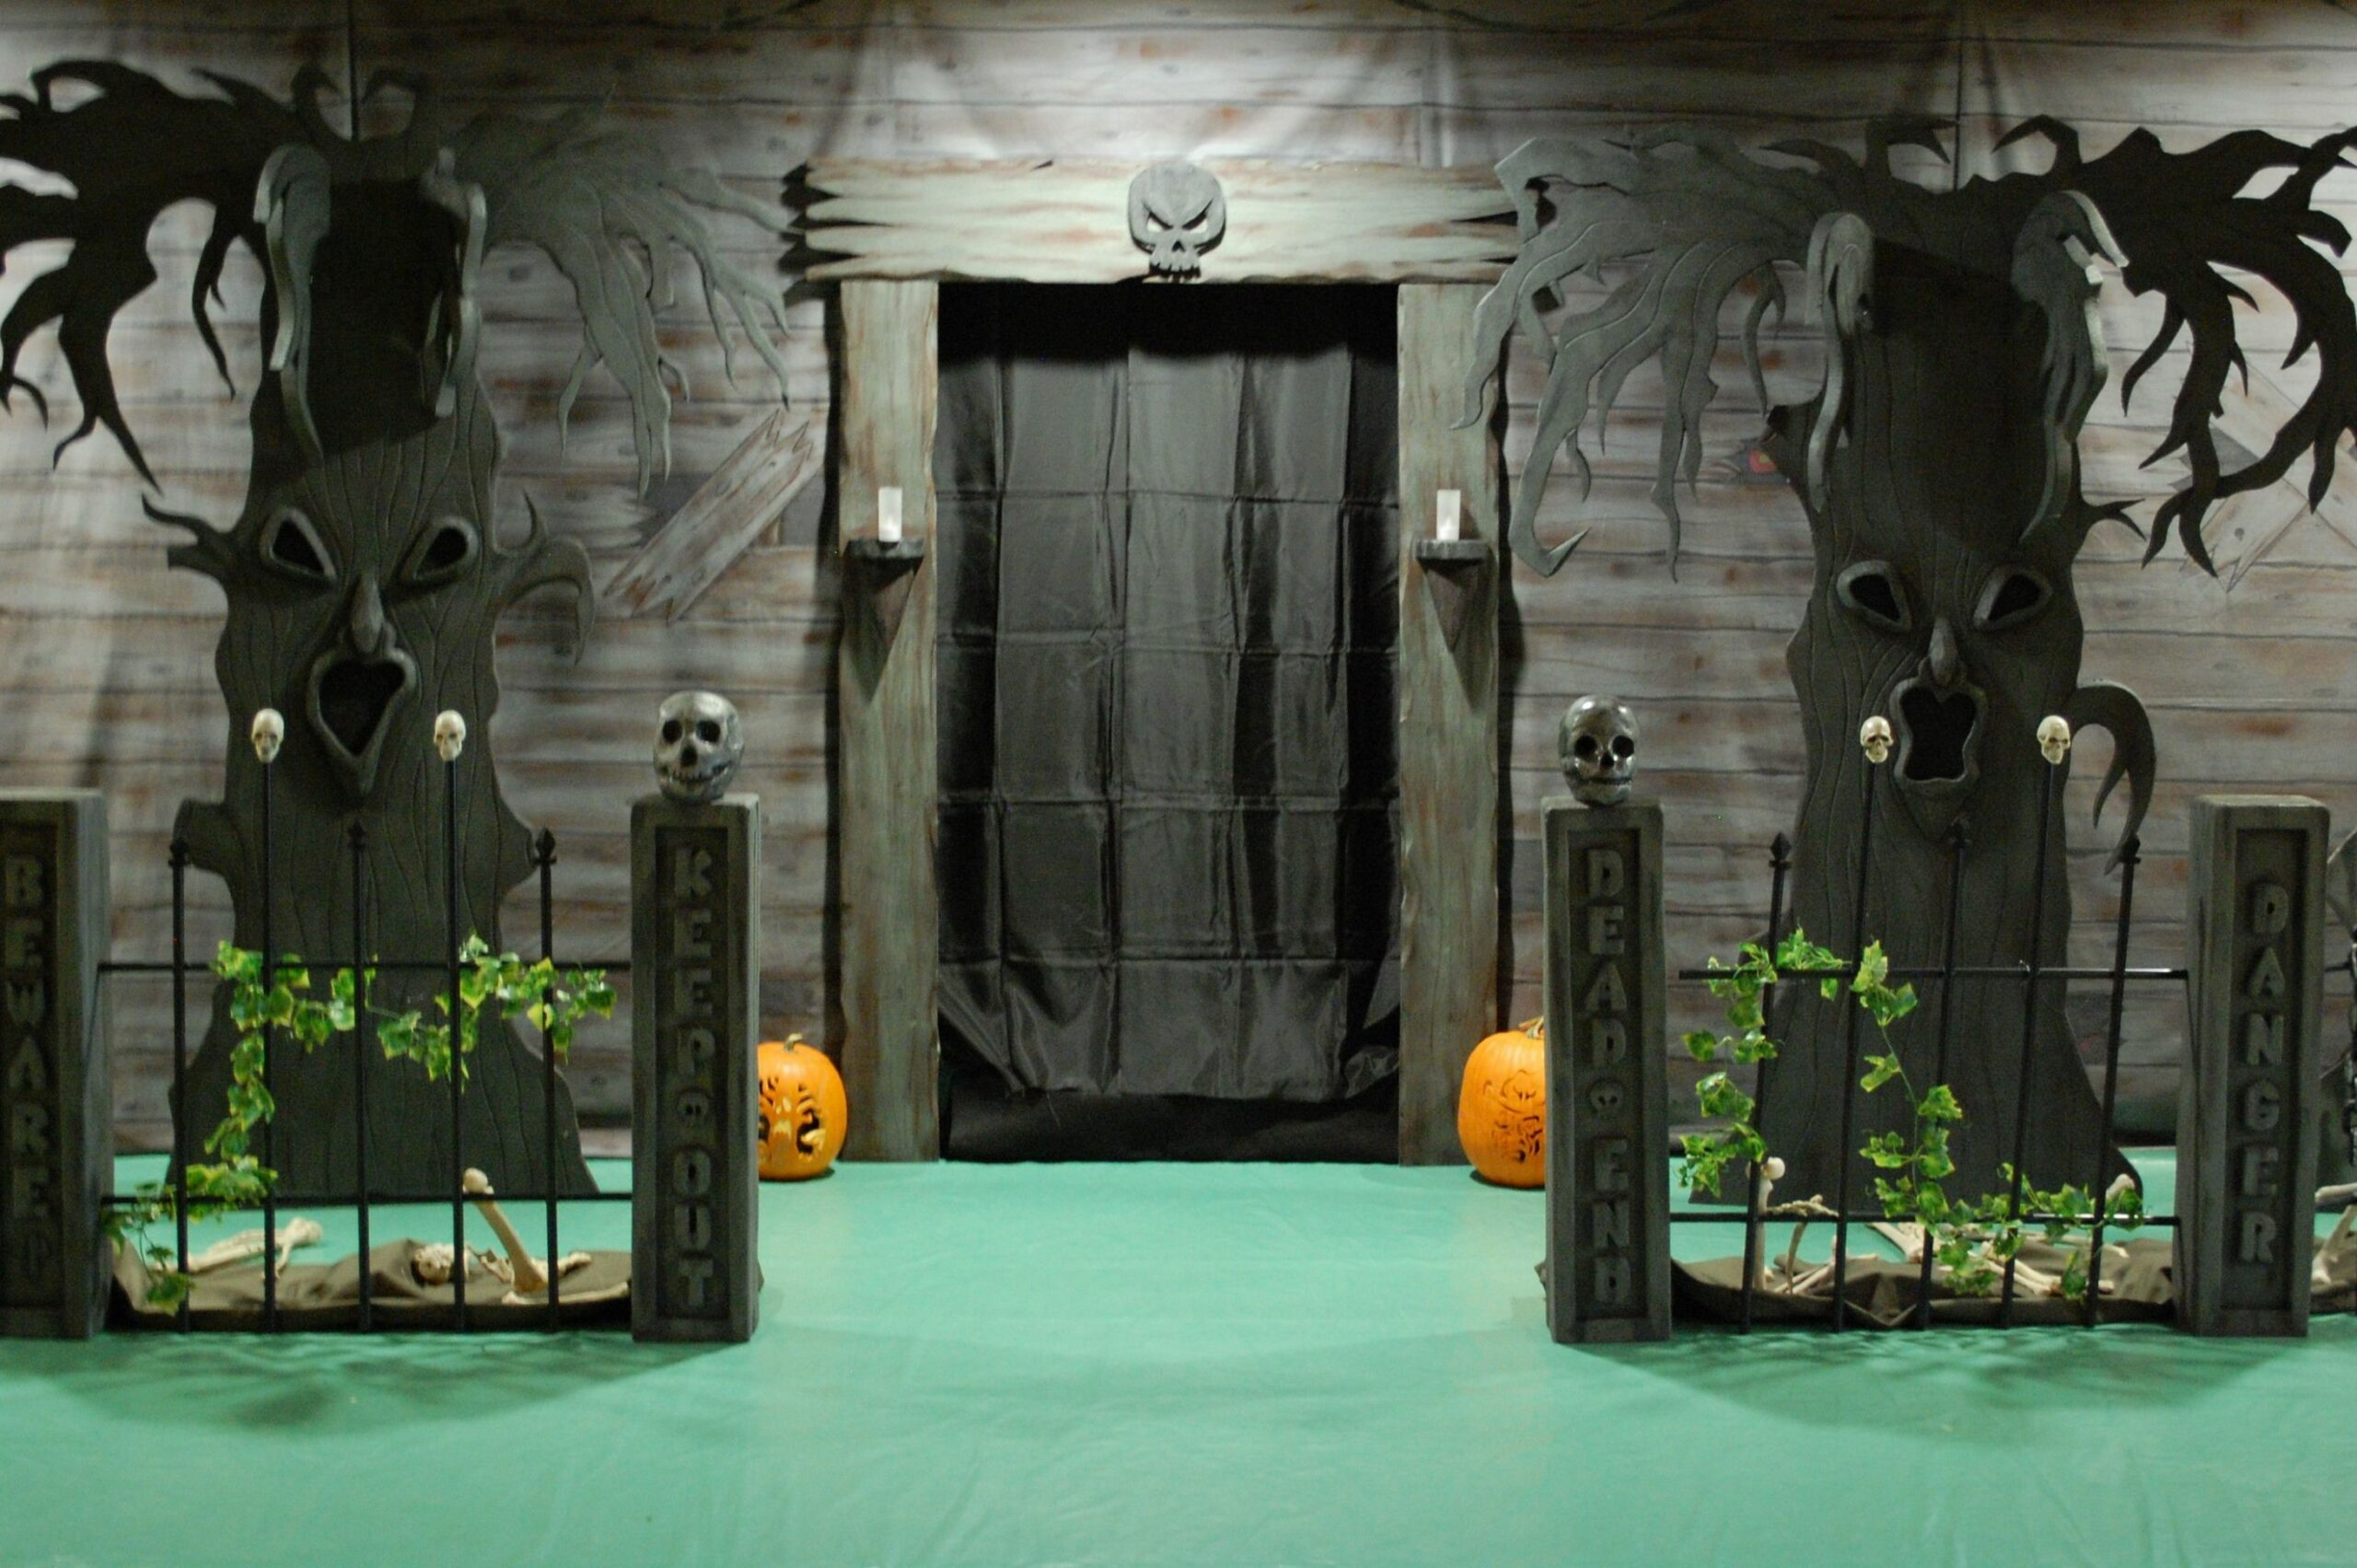 haunted-house-ideas | Haunted house decorations, Halloween haunted ...